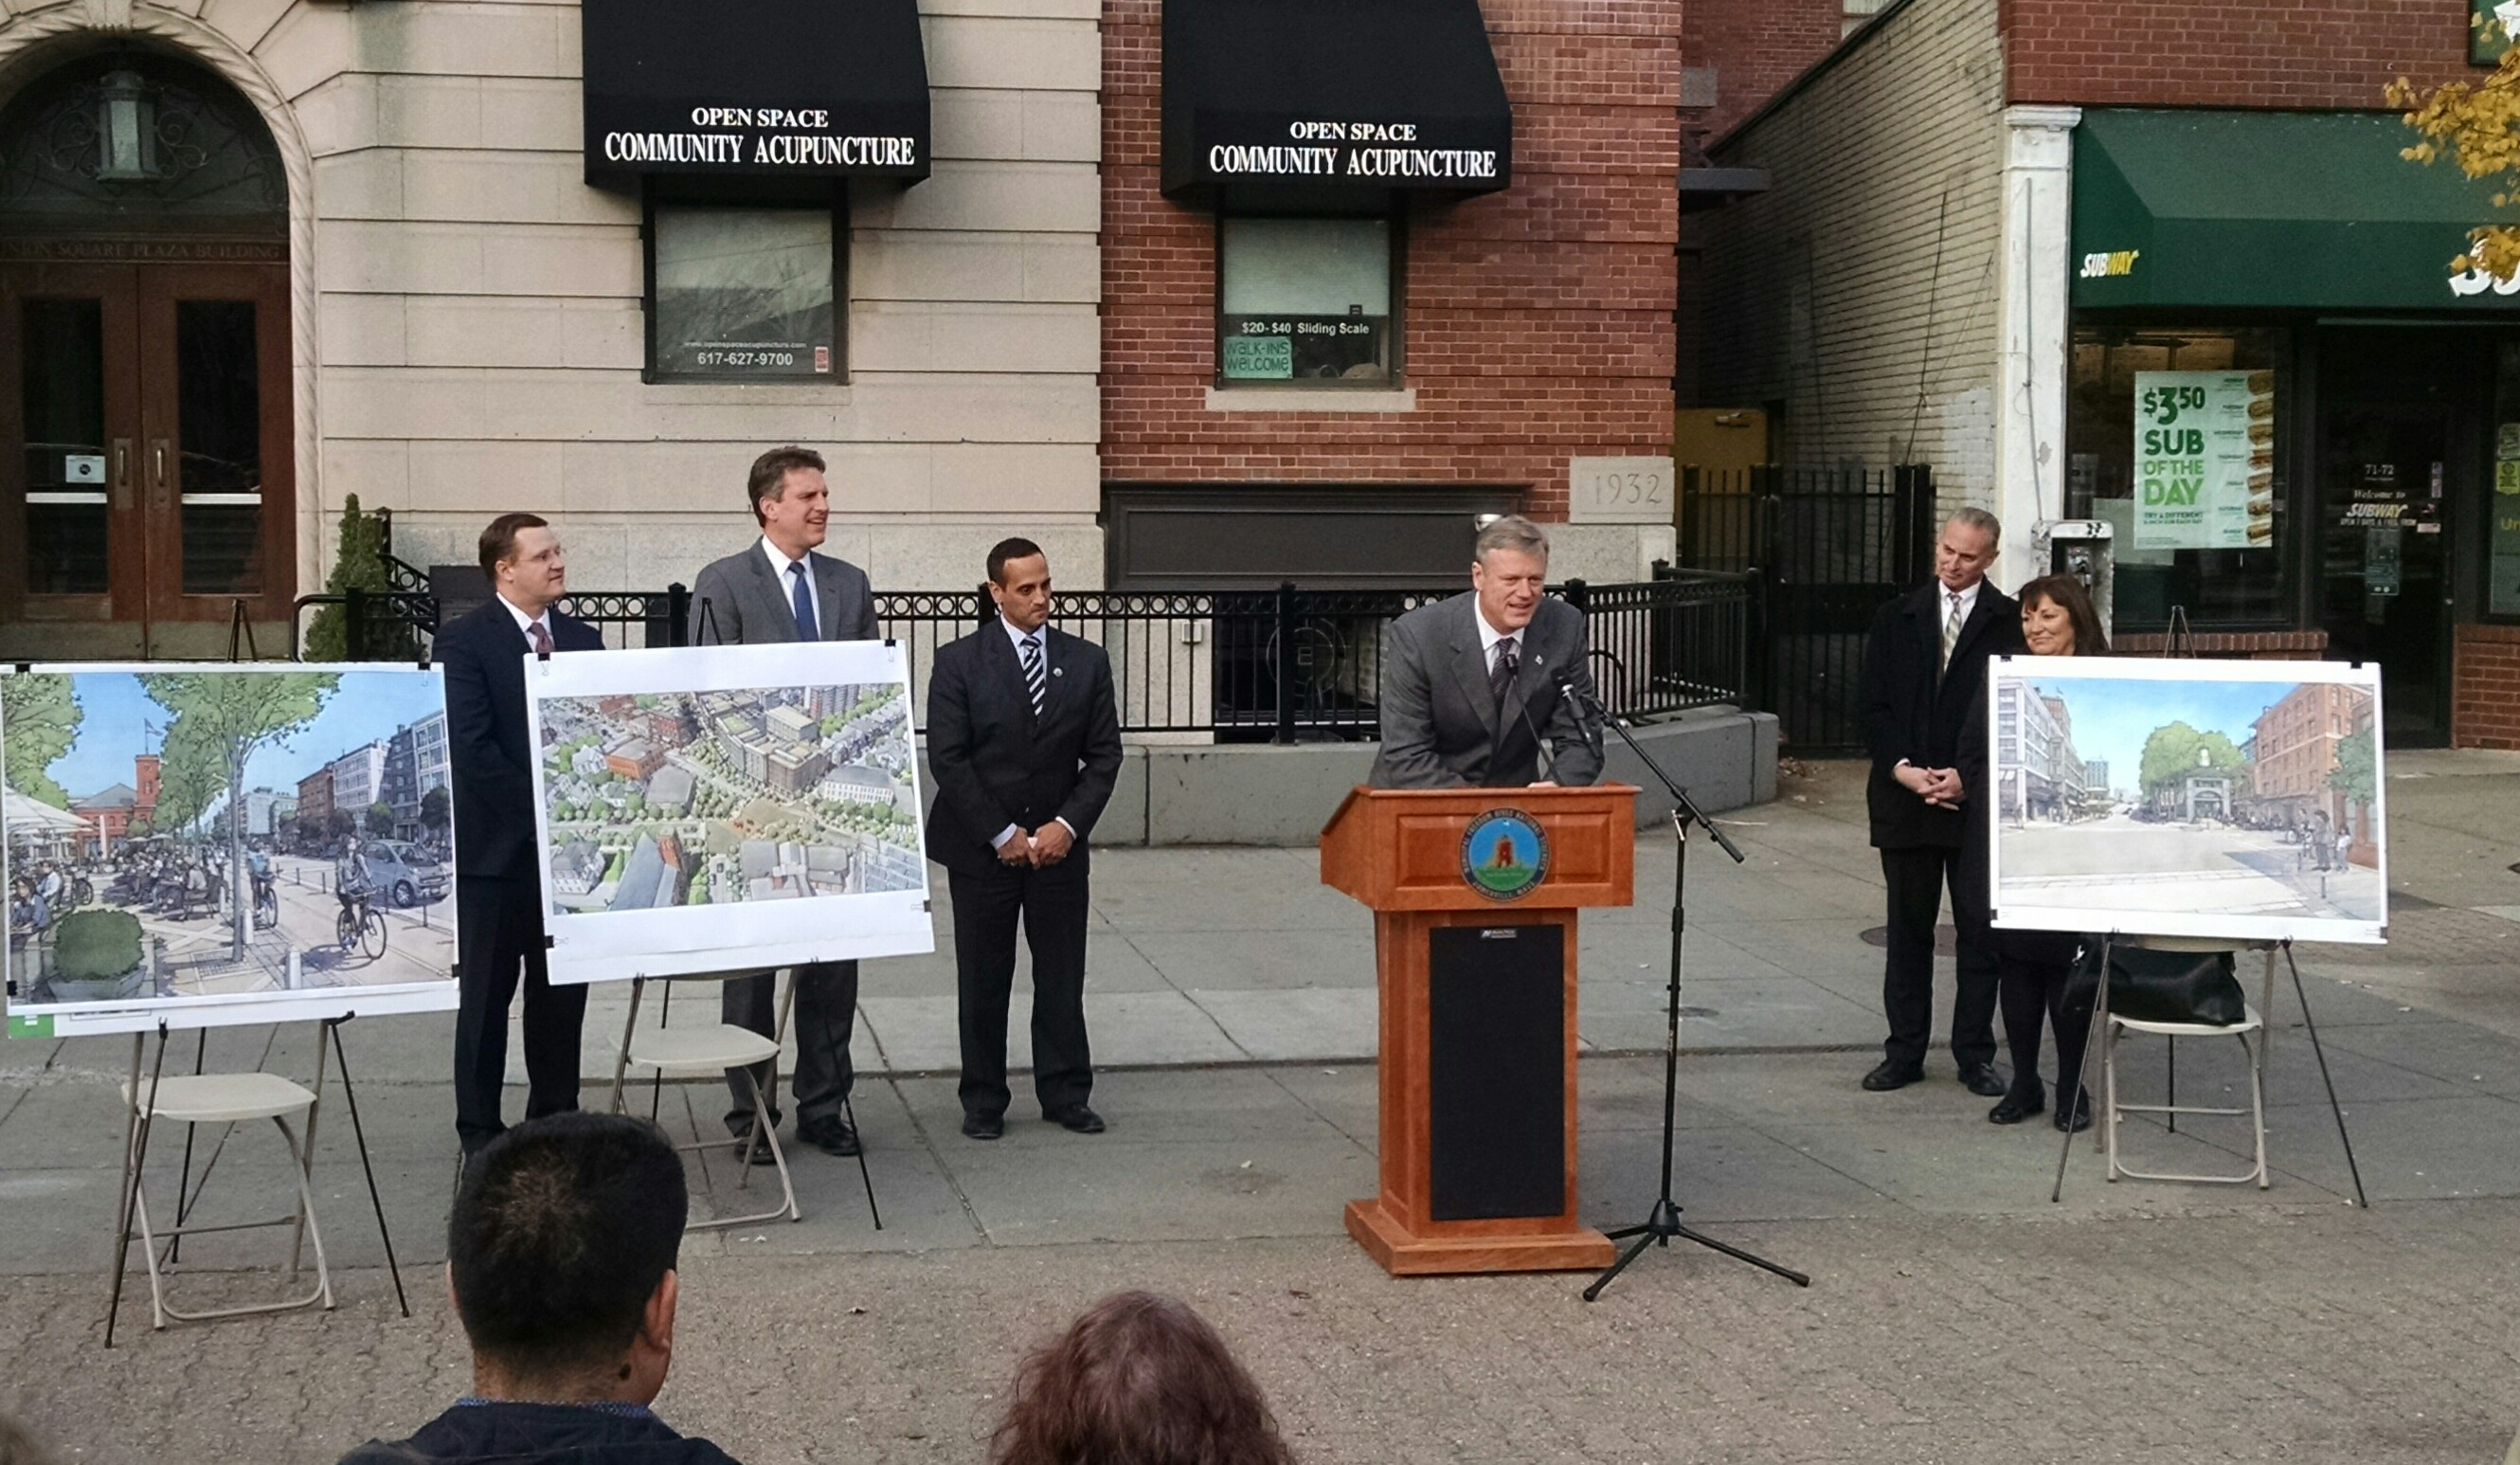 Massachusetts Governor Charlie Baker stands at a podium with Mayor Joseph Curtatone to display renderings of the future of Union Square infrastructure